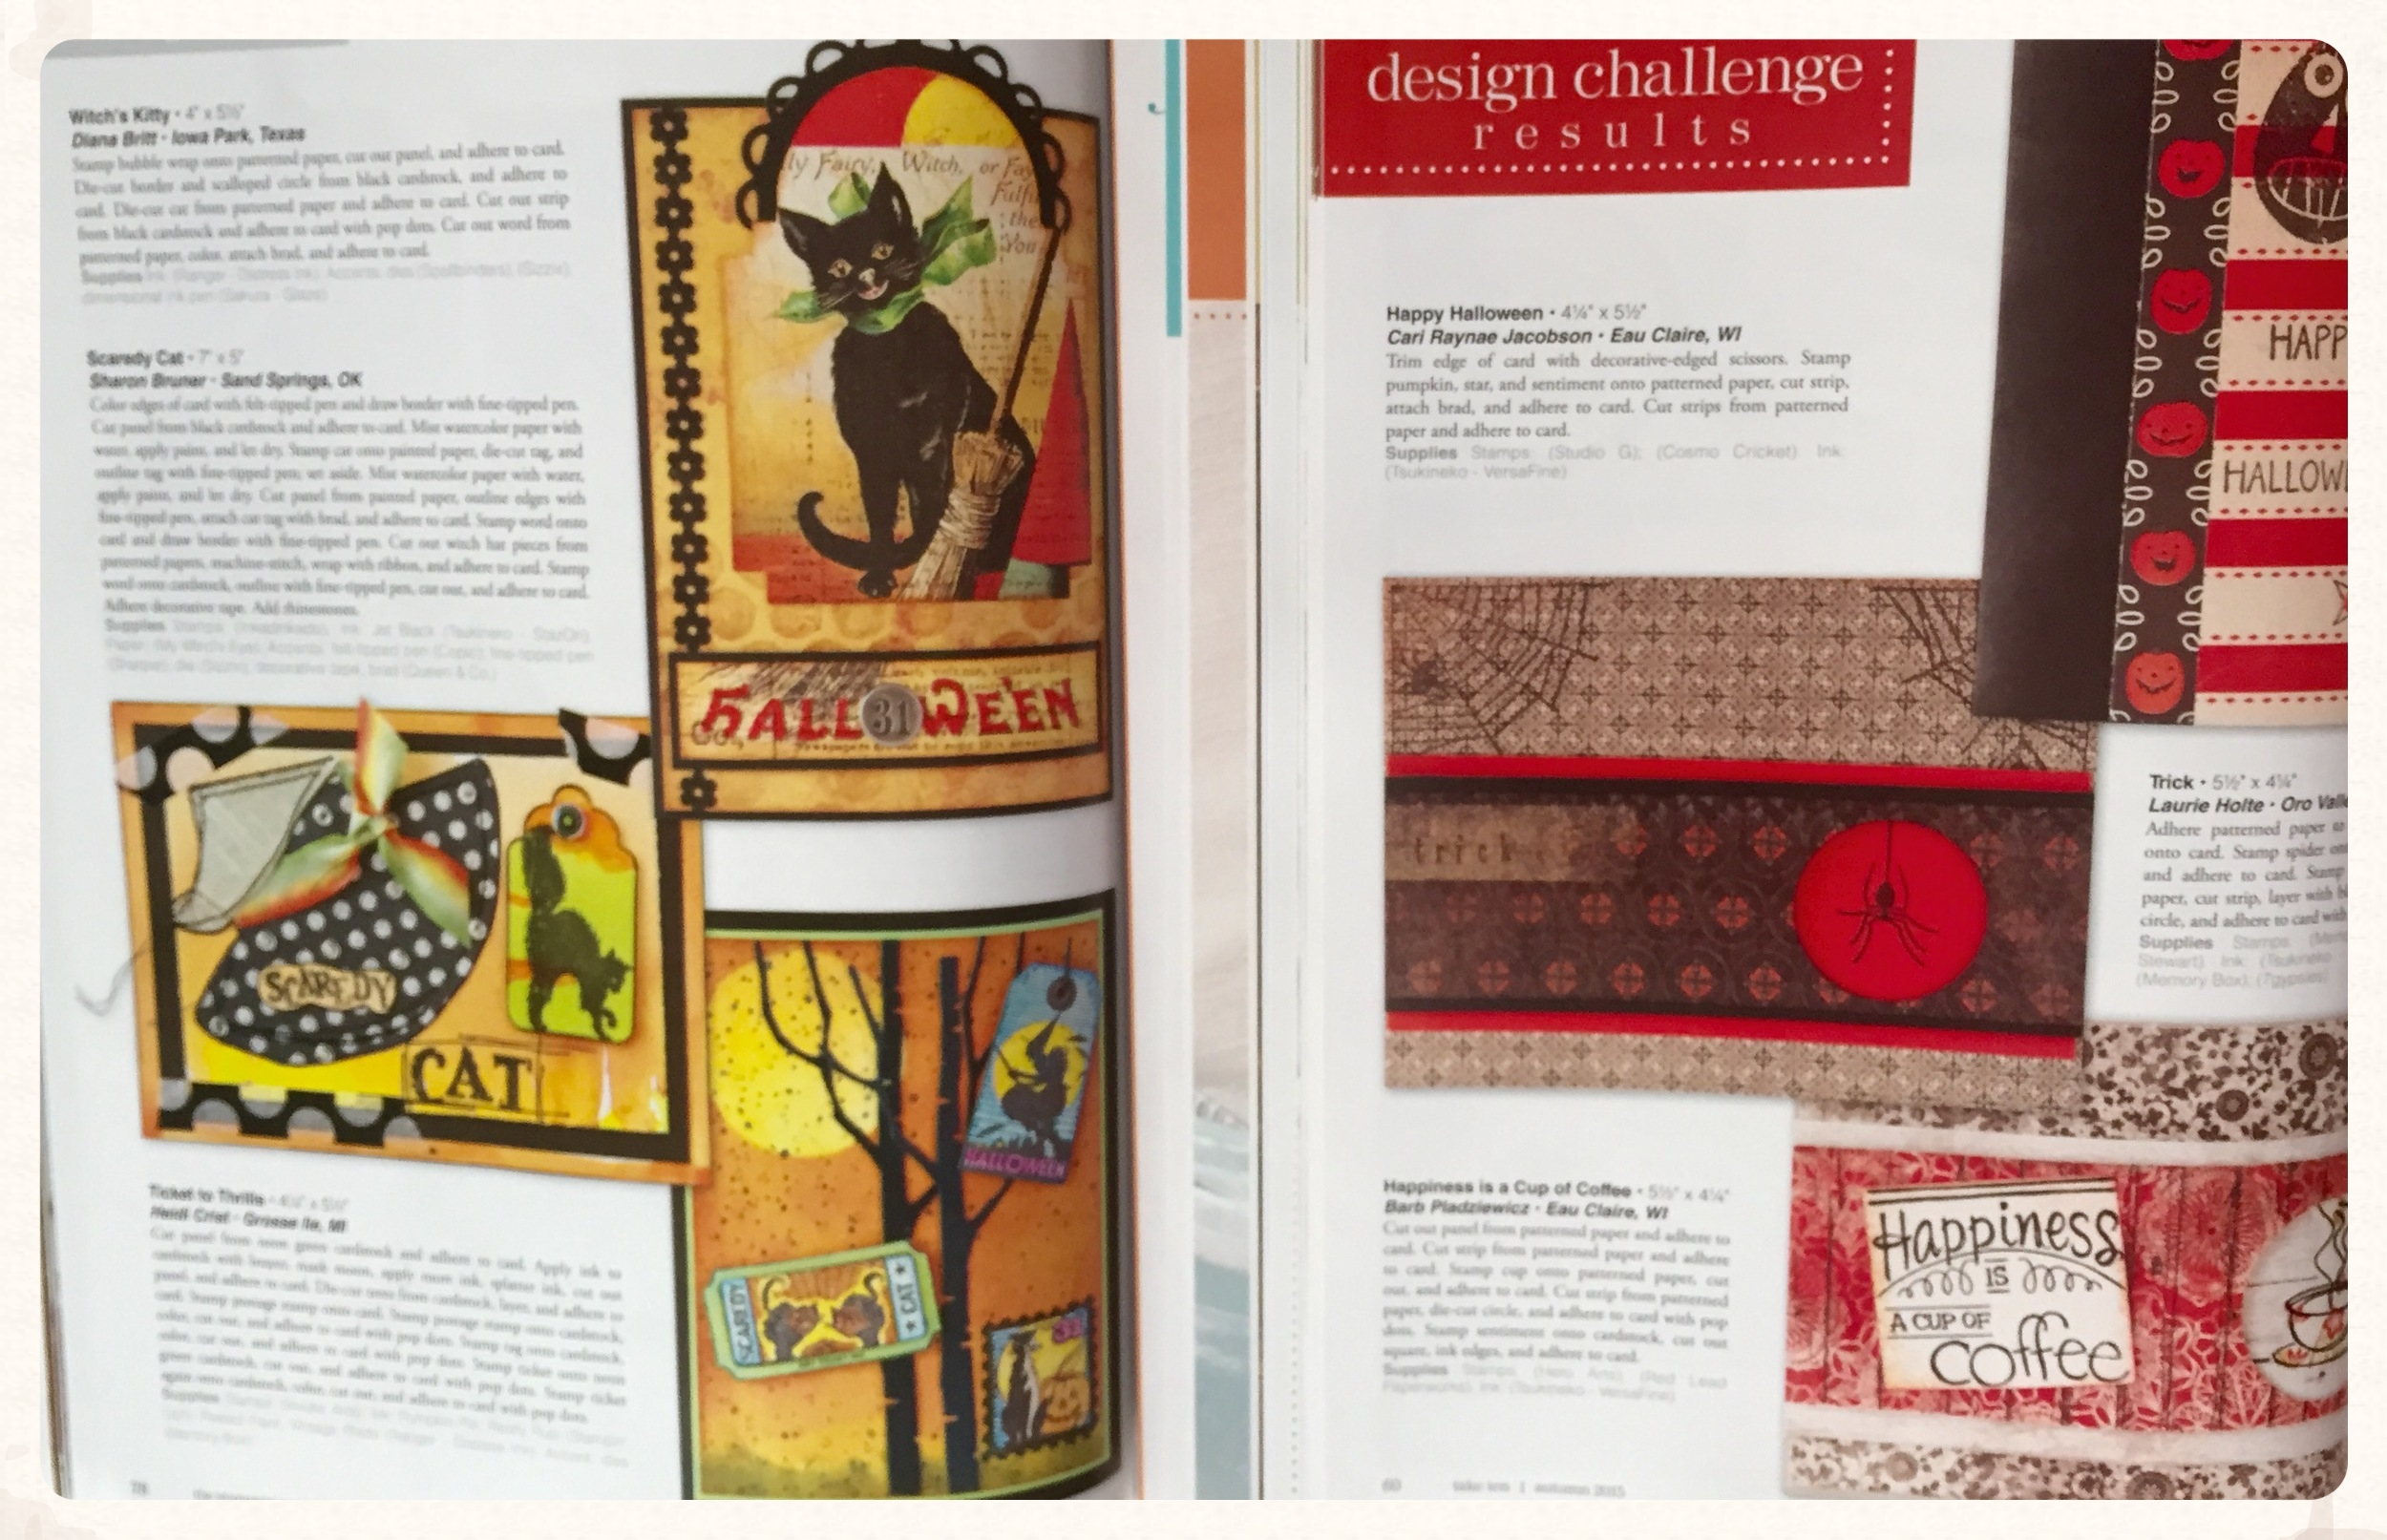 The purpose of all creations in Take Ten (on right)are to be able to recreate the designs in 10 minutes or less - quick and easy designs by artists.